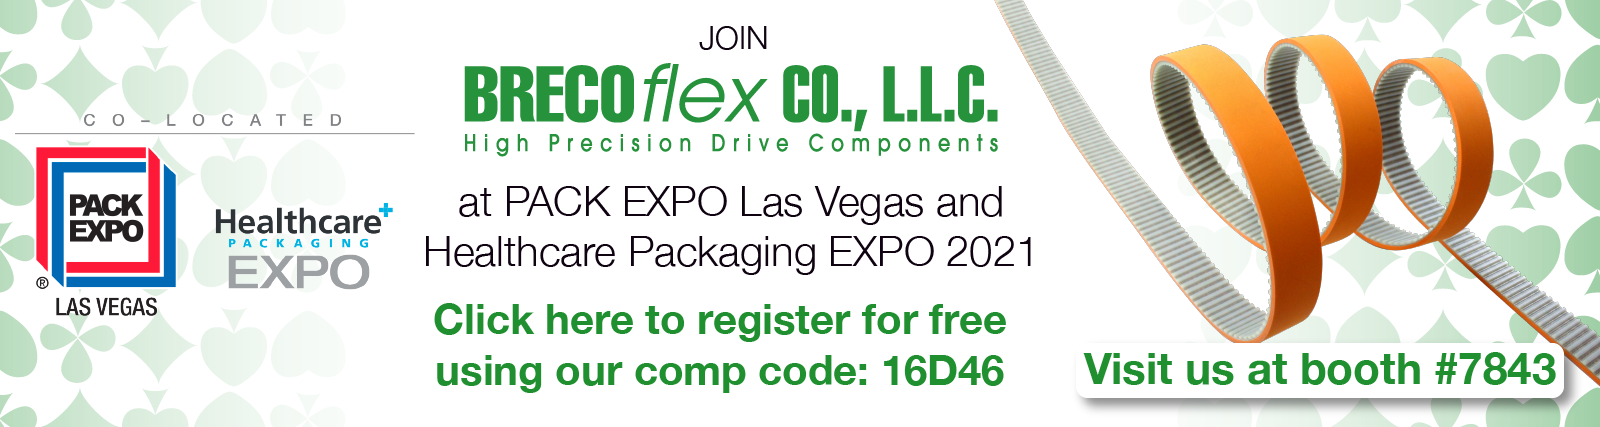 banner to register for pack expo